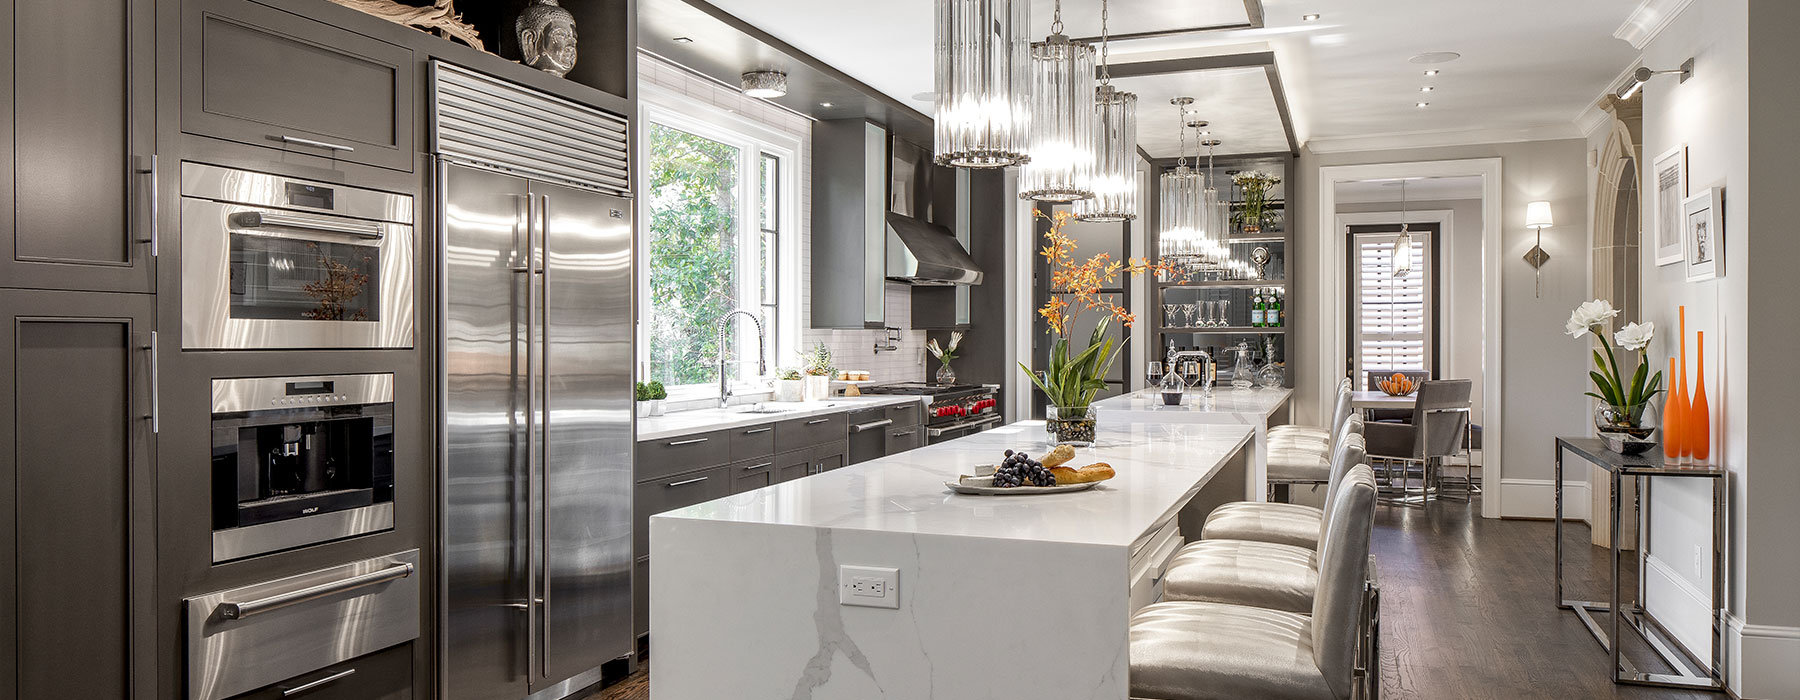 House Interior Design - Transitional Beauty - Asheville, NC